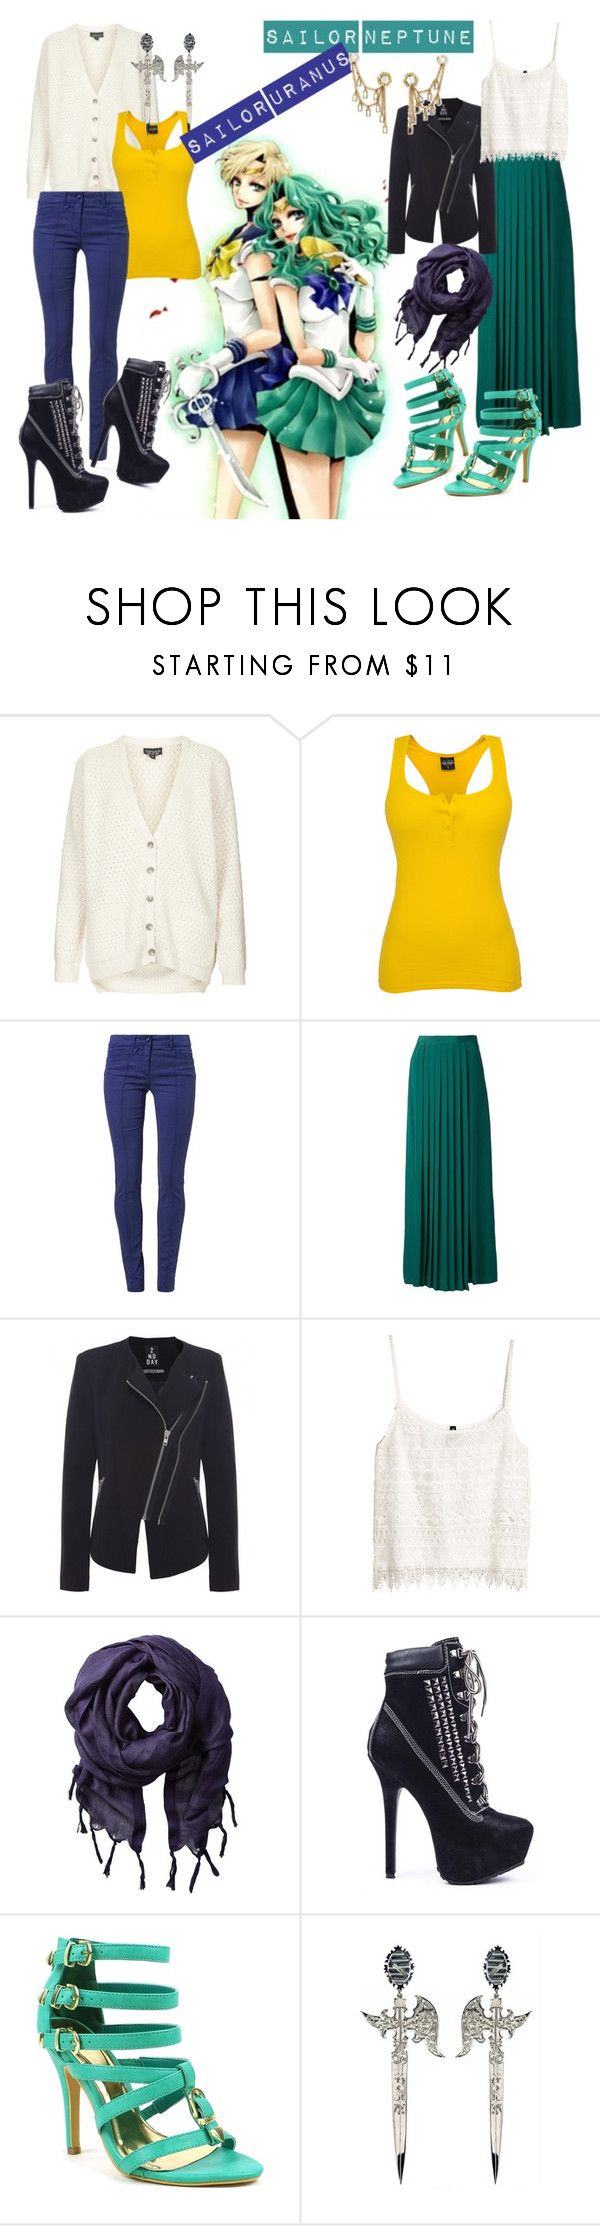 """""""Sailor Uranus and Sailor Neptune"""" by rachel-hubby ❤ liked on Polyvore featuring Topshop, Sportalm, TIBI, 2nd Day, H&M, Love Quotes Scarves, Timberland, Fahrenheit and Eina Ahluwalia"""